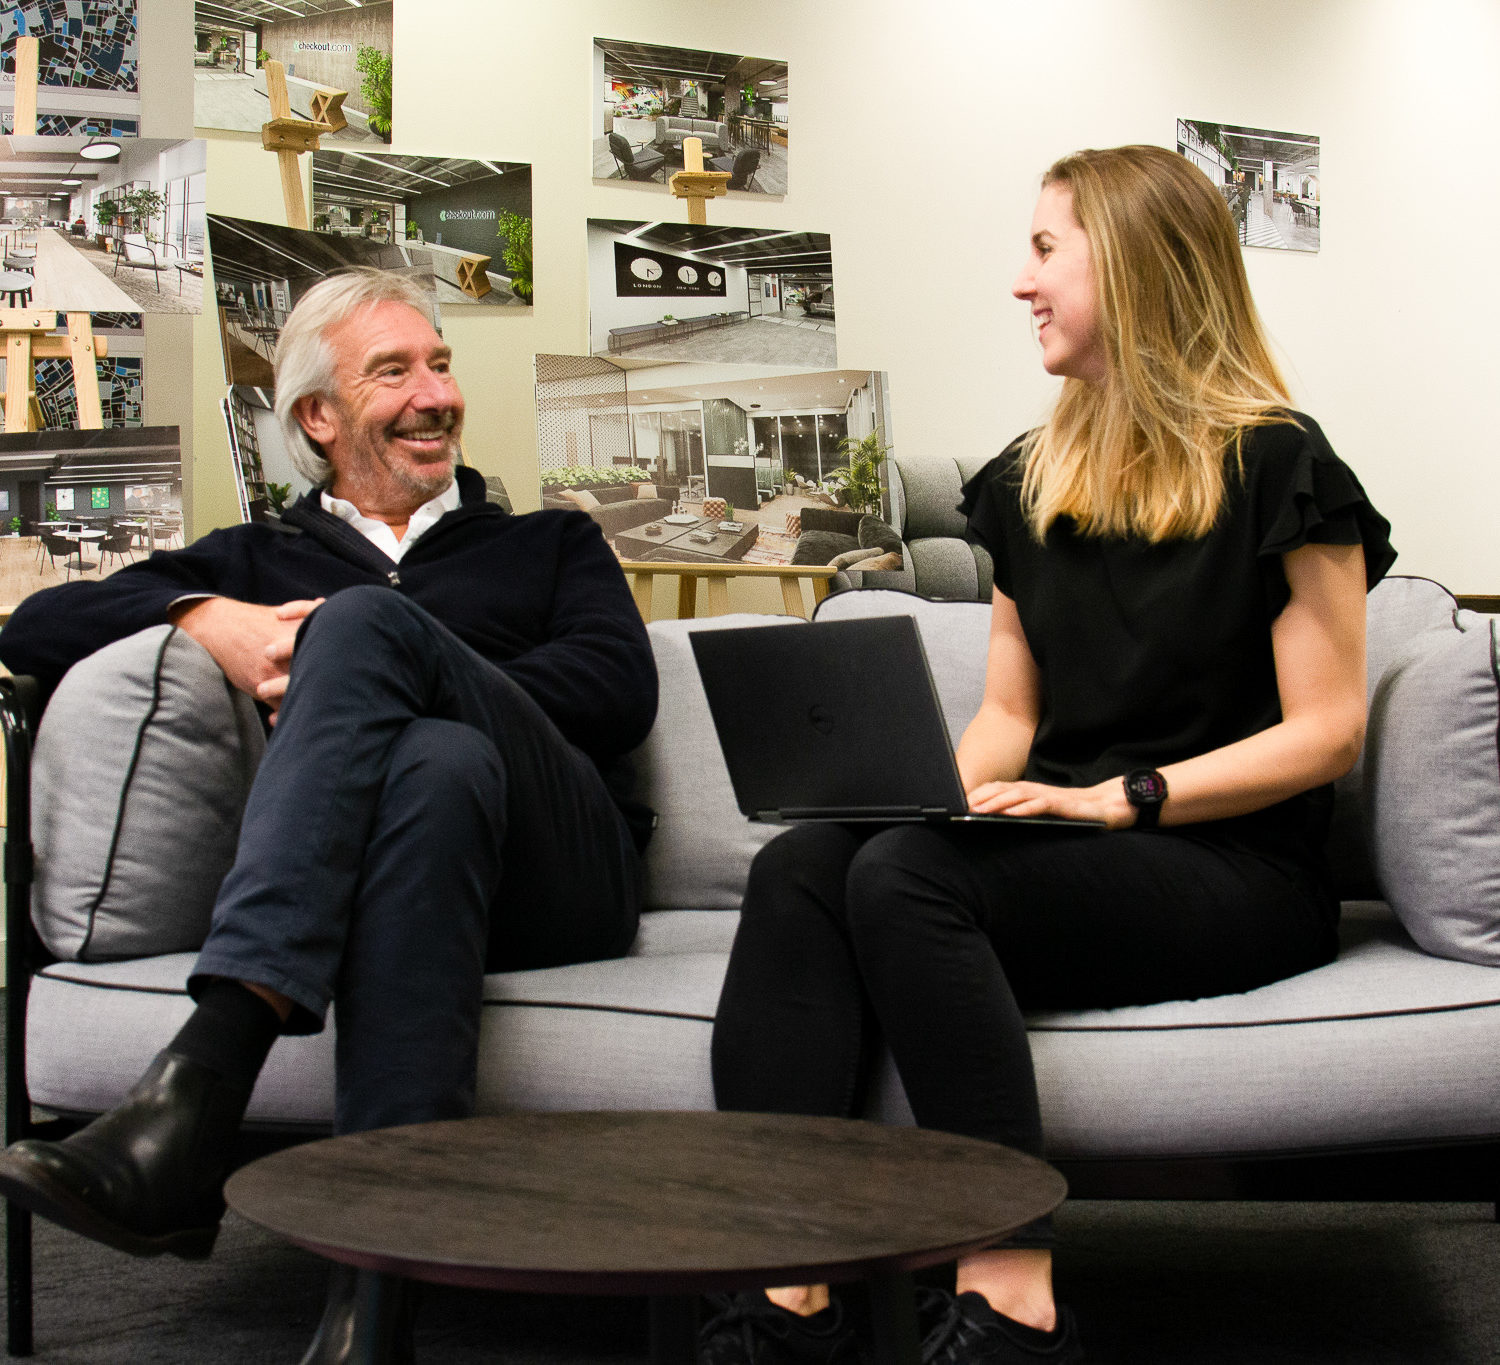 Toby and Kate sat on a sofa working collaboratively in the design area smiling